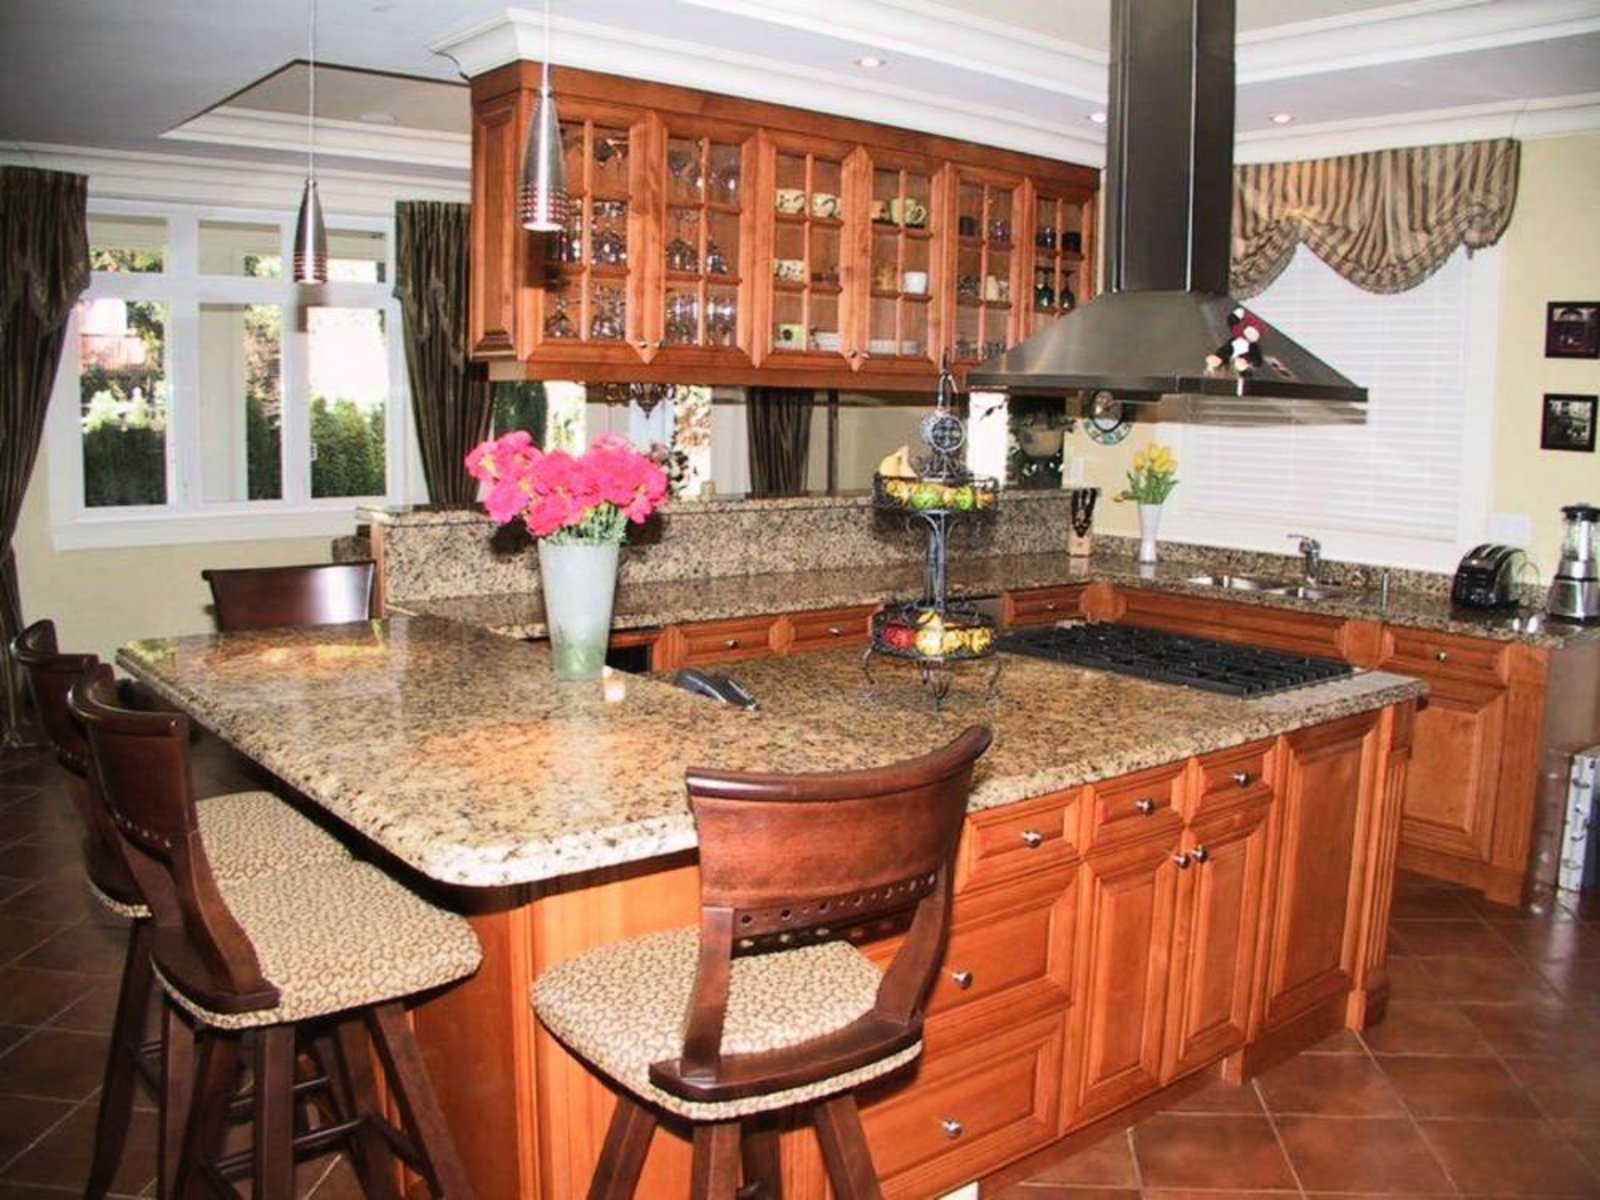 Kitchen Stainless steel appliances, wine fridge, granite countertops, Breakfast bar.